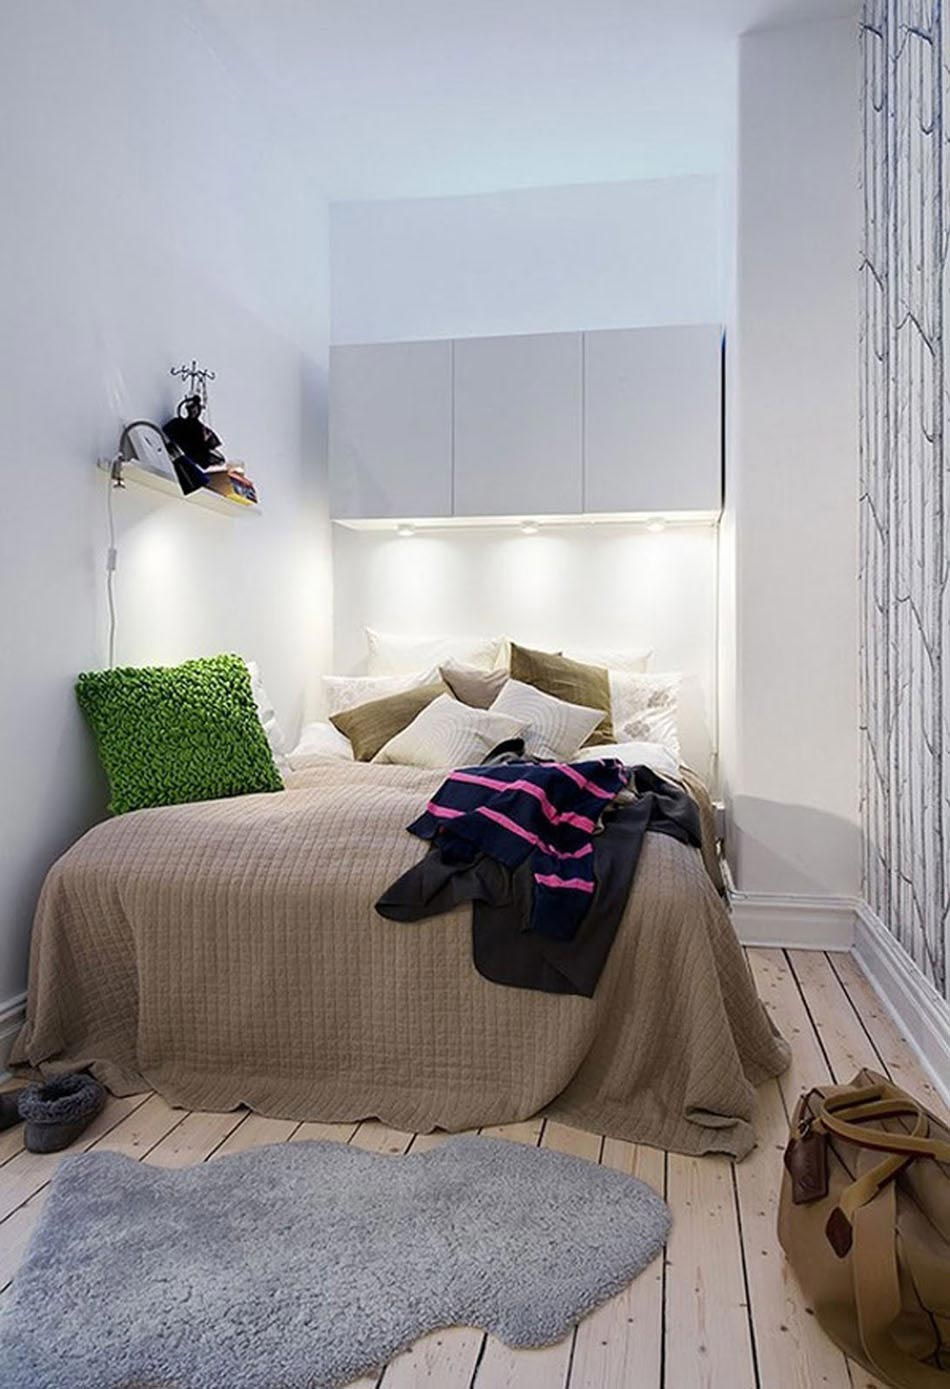 id es pour l am nagement petite chambre la fois. Black Bedroom Furniture Sets. Home Design Ideas